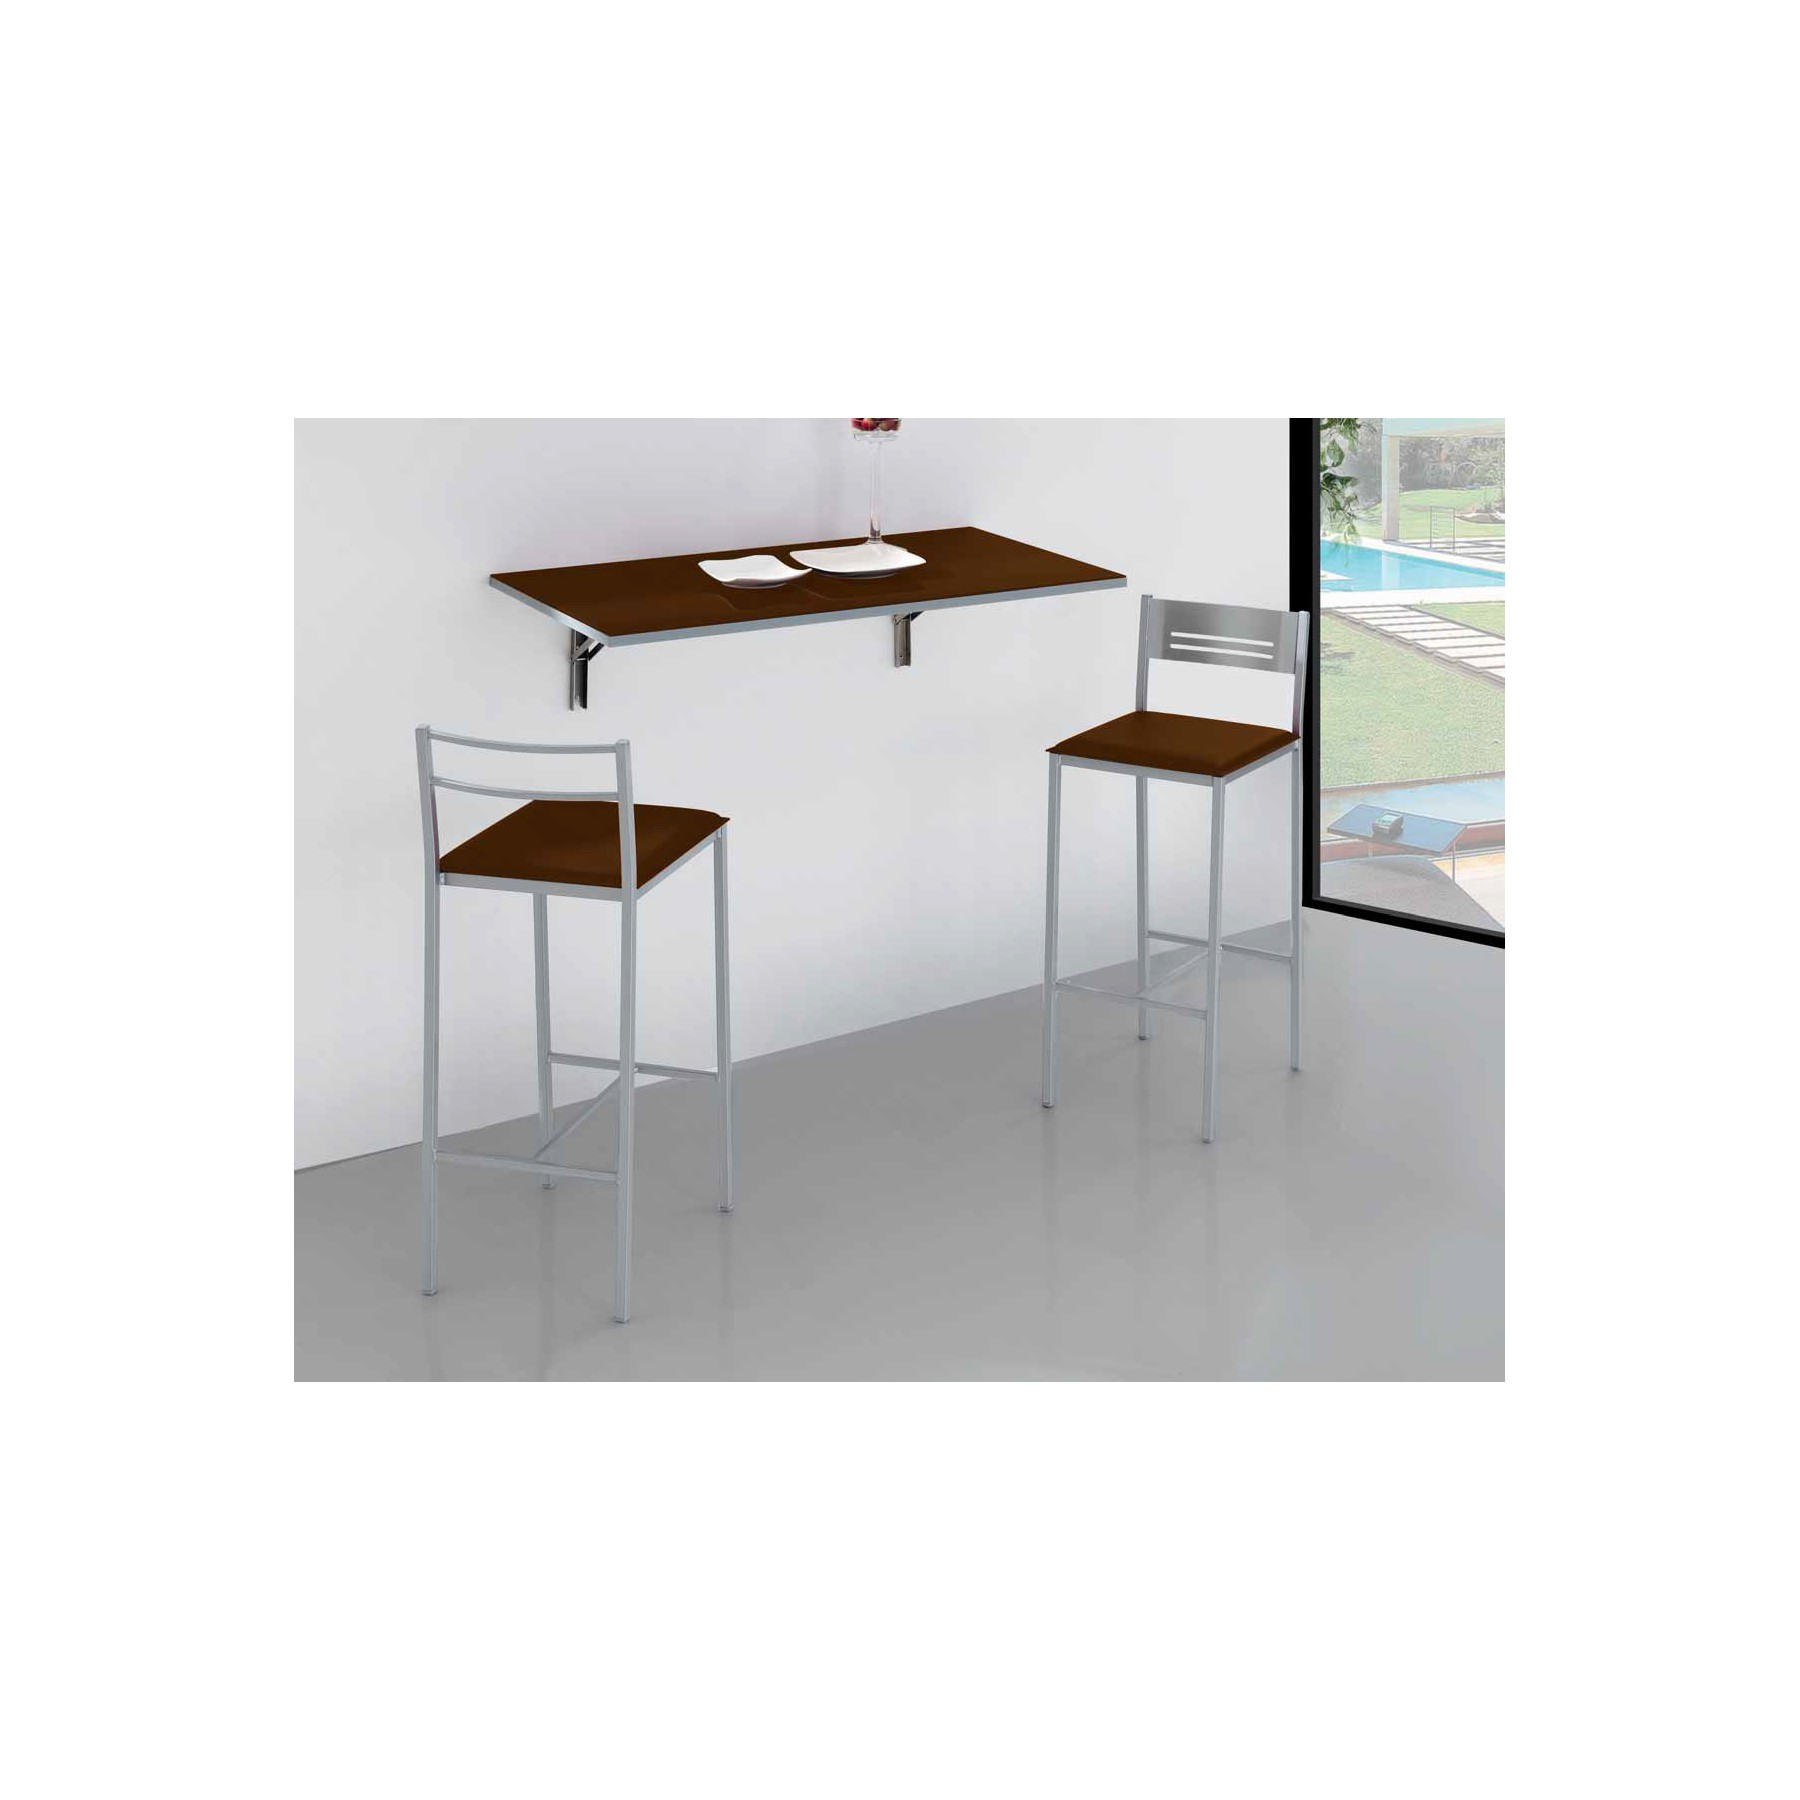 Mesa de cocina de pared plegable simple dkg for Mesa abatible pared cocina